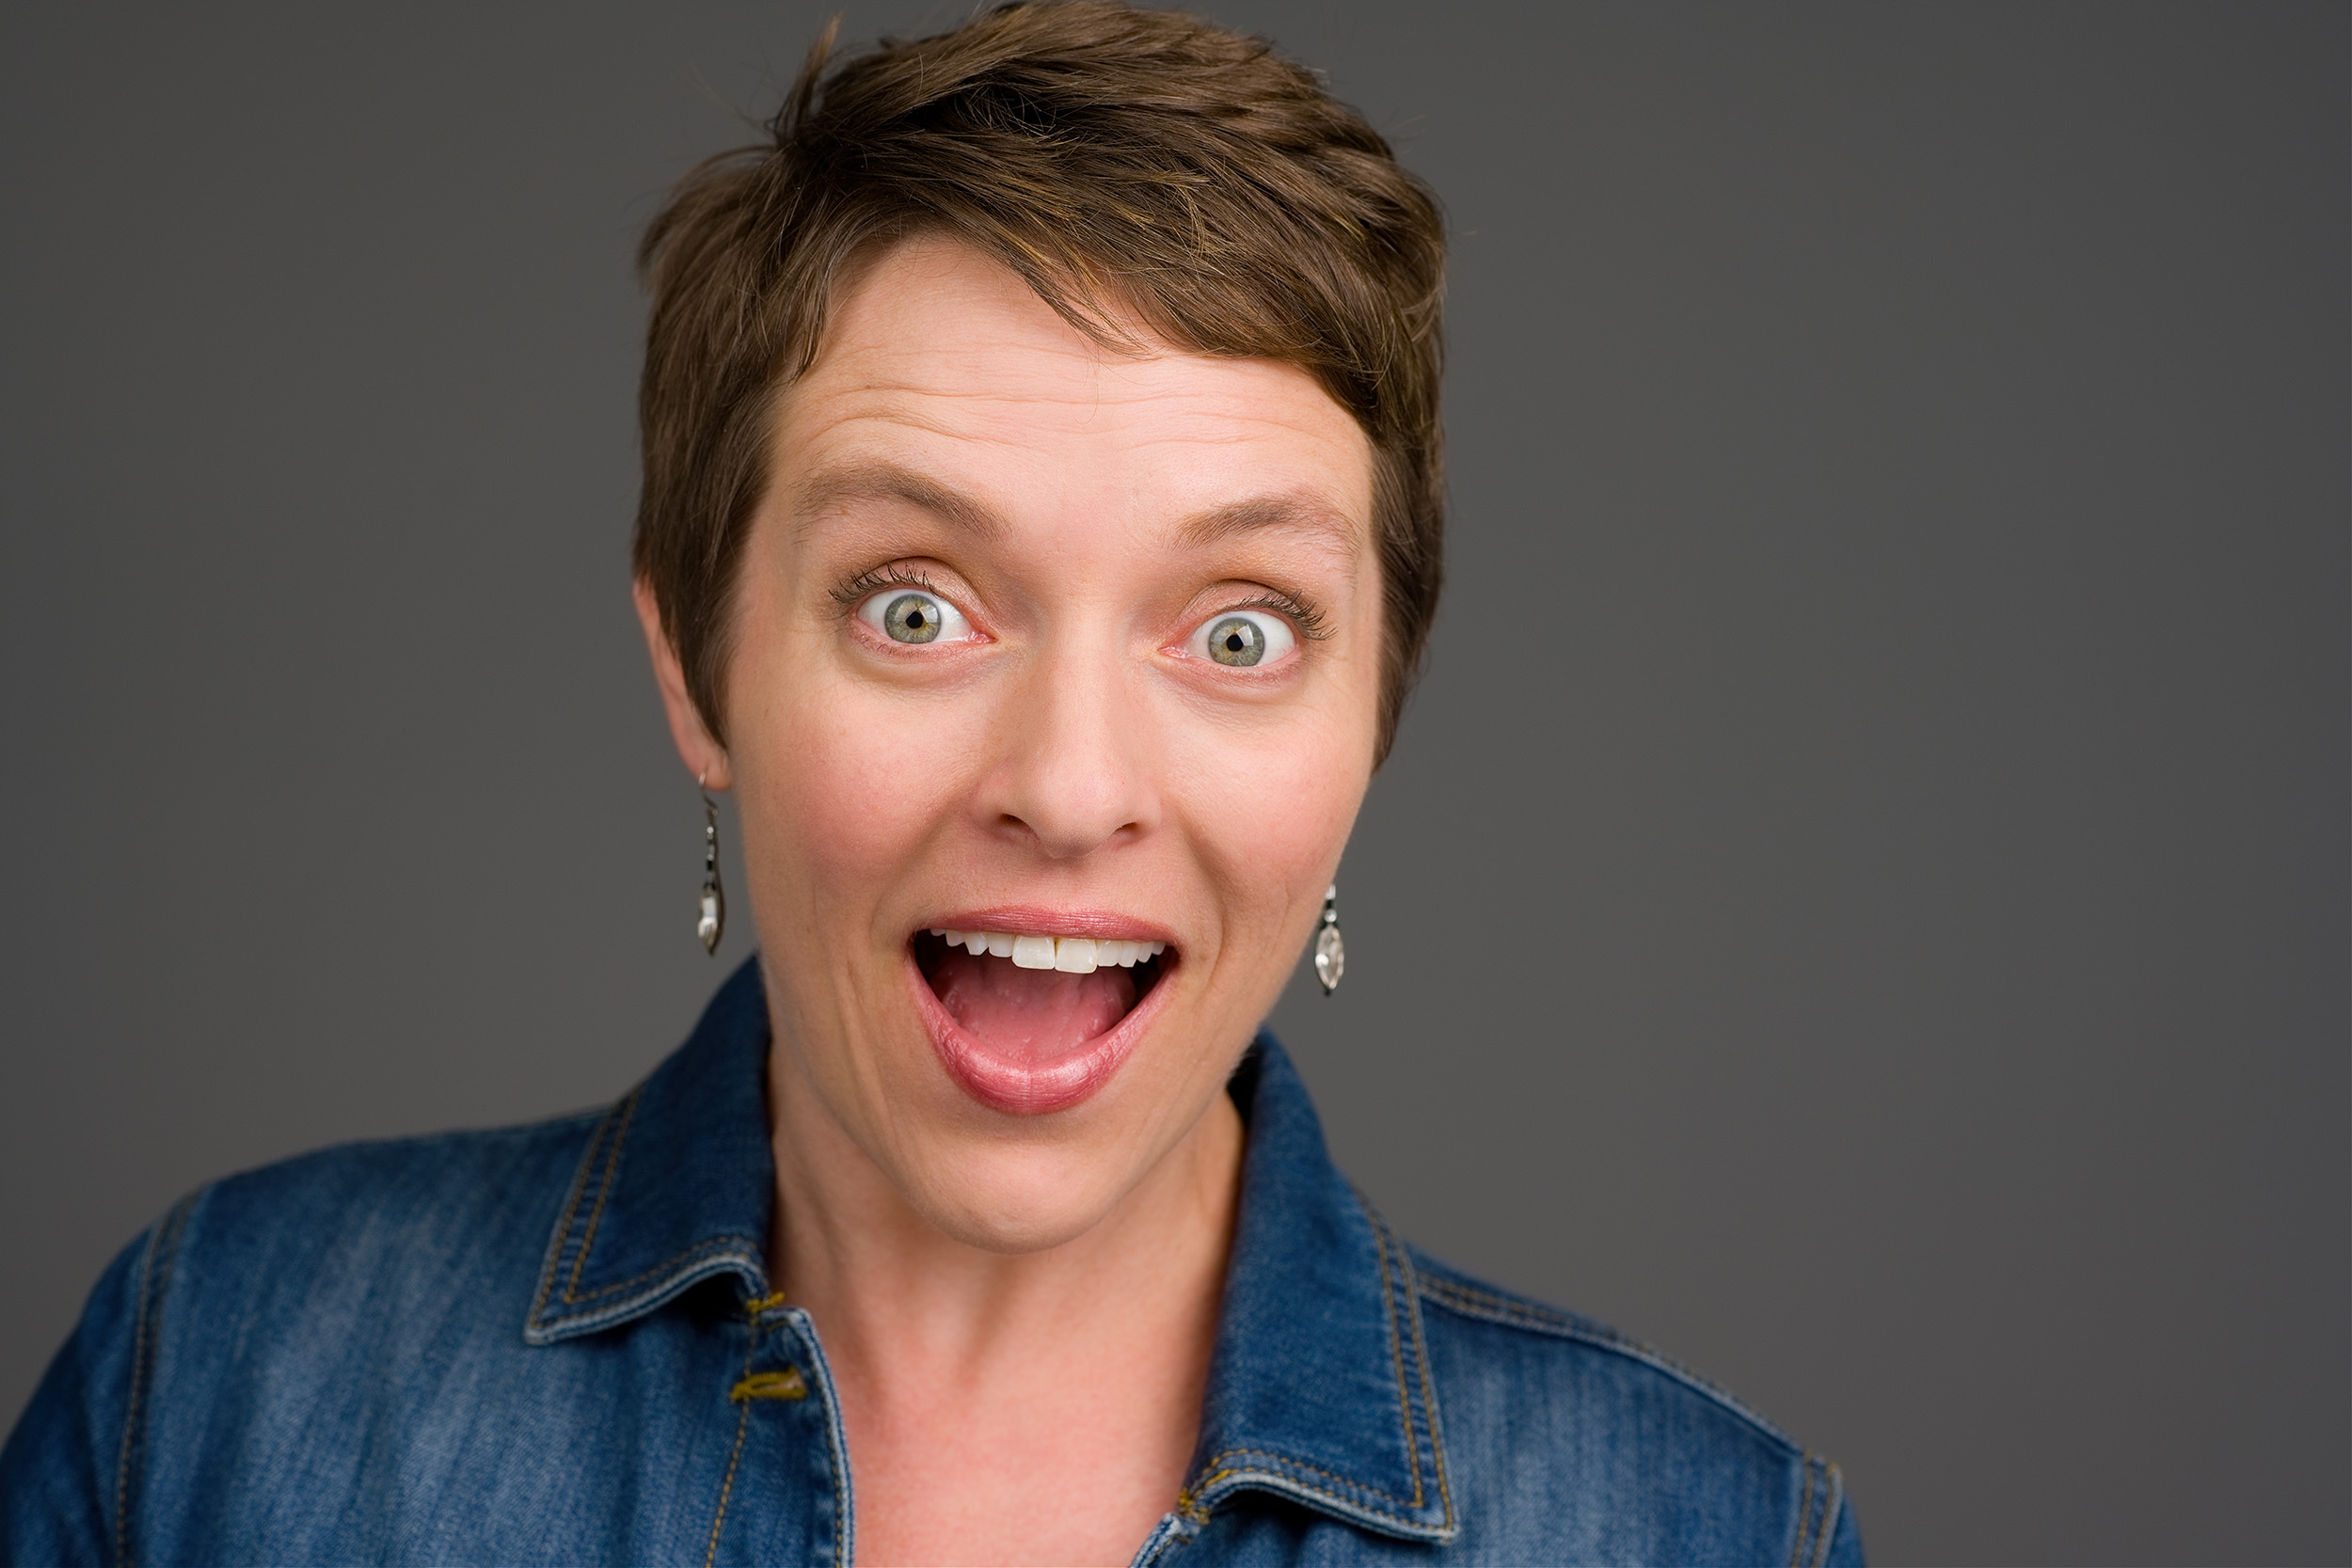 Woman expressing a happy surprise headshot.